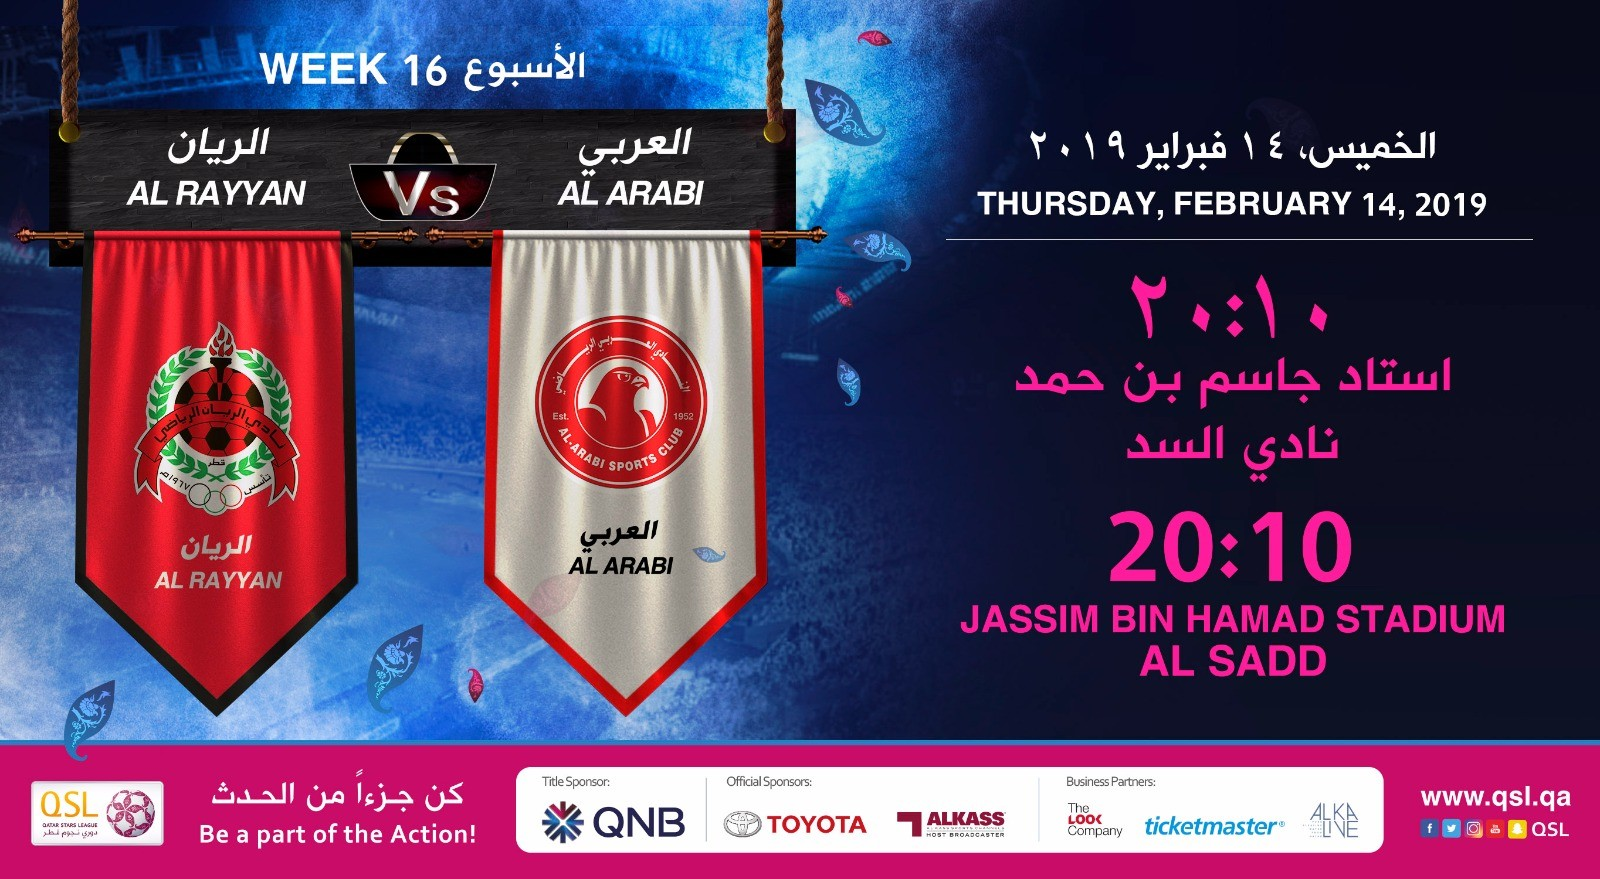 QNB Stars League Week 16 — Al Rayyan vs Al Arabi